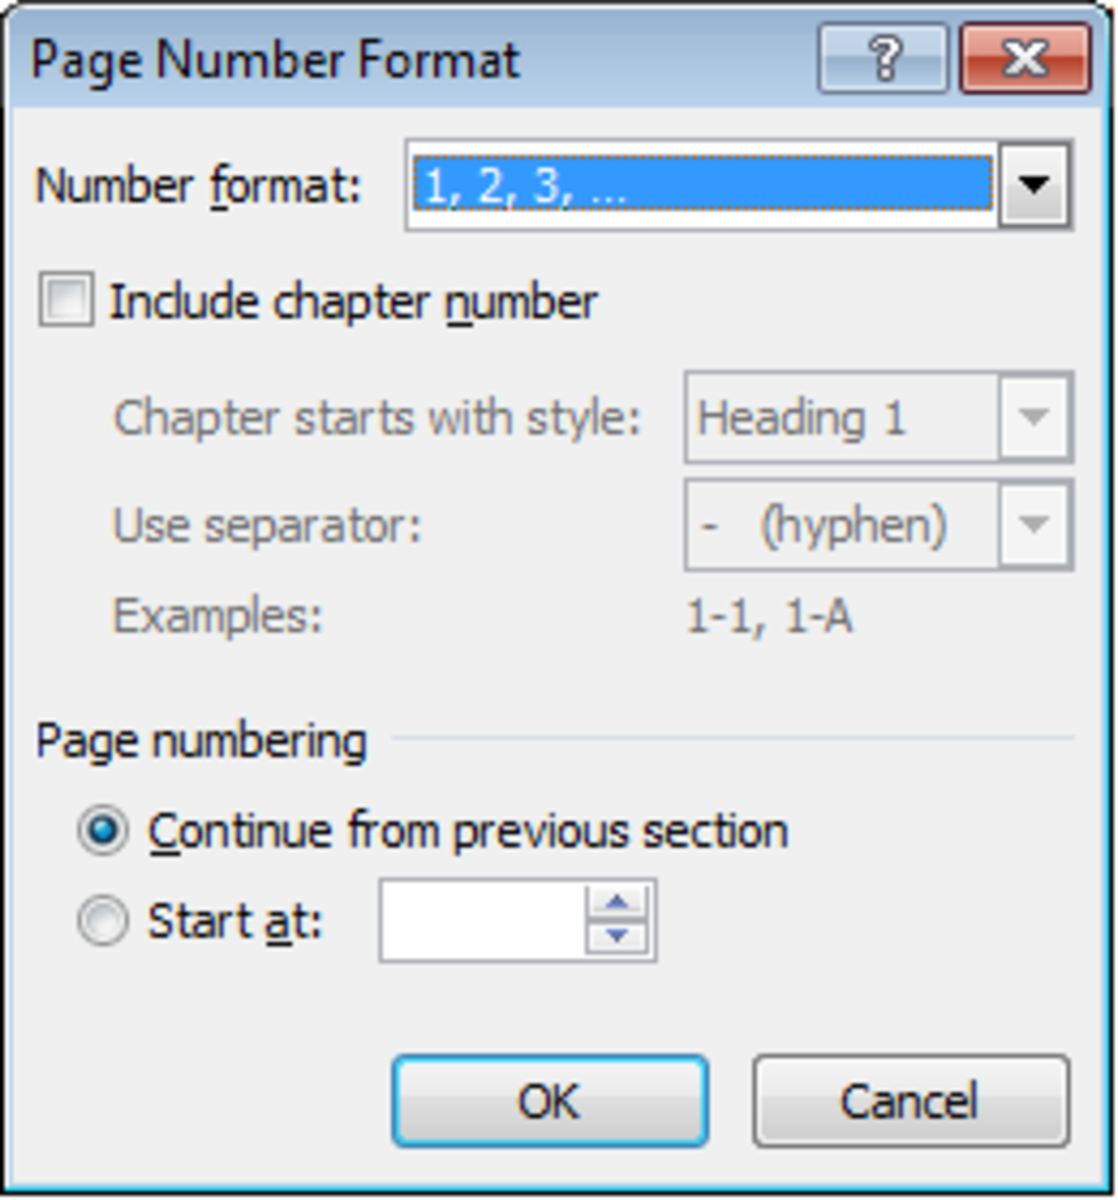 Editable options available for page numbers in Word 2007 and Word 2010.